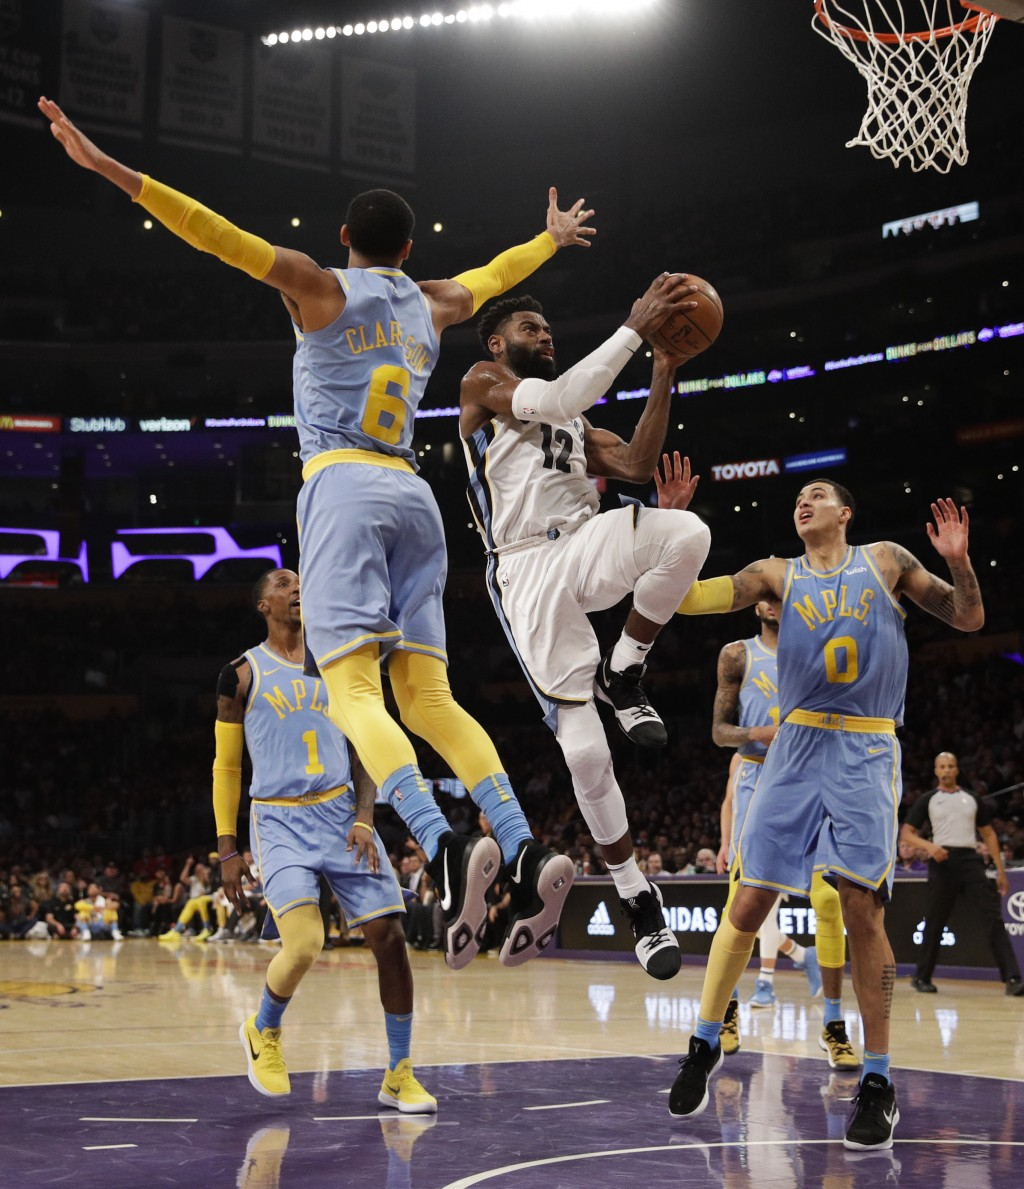 Memphis Grizzlies' Tyreke Evans, center, goes up for a basket past Los Angeles Lakers' Jordan Clarkson, left, and Kyle Kuzma during the first half of ...